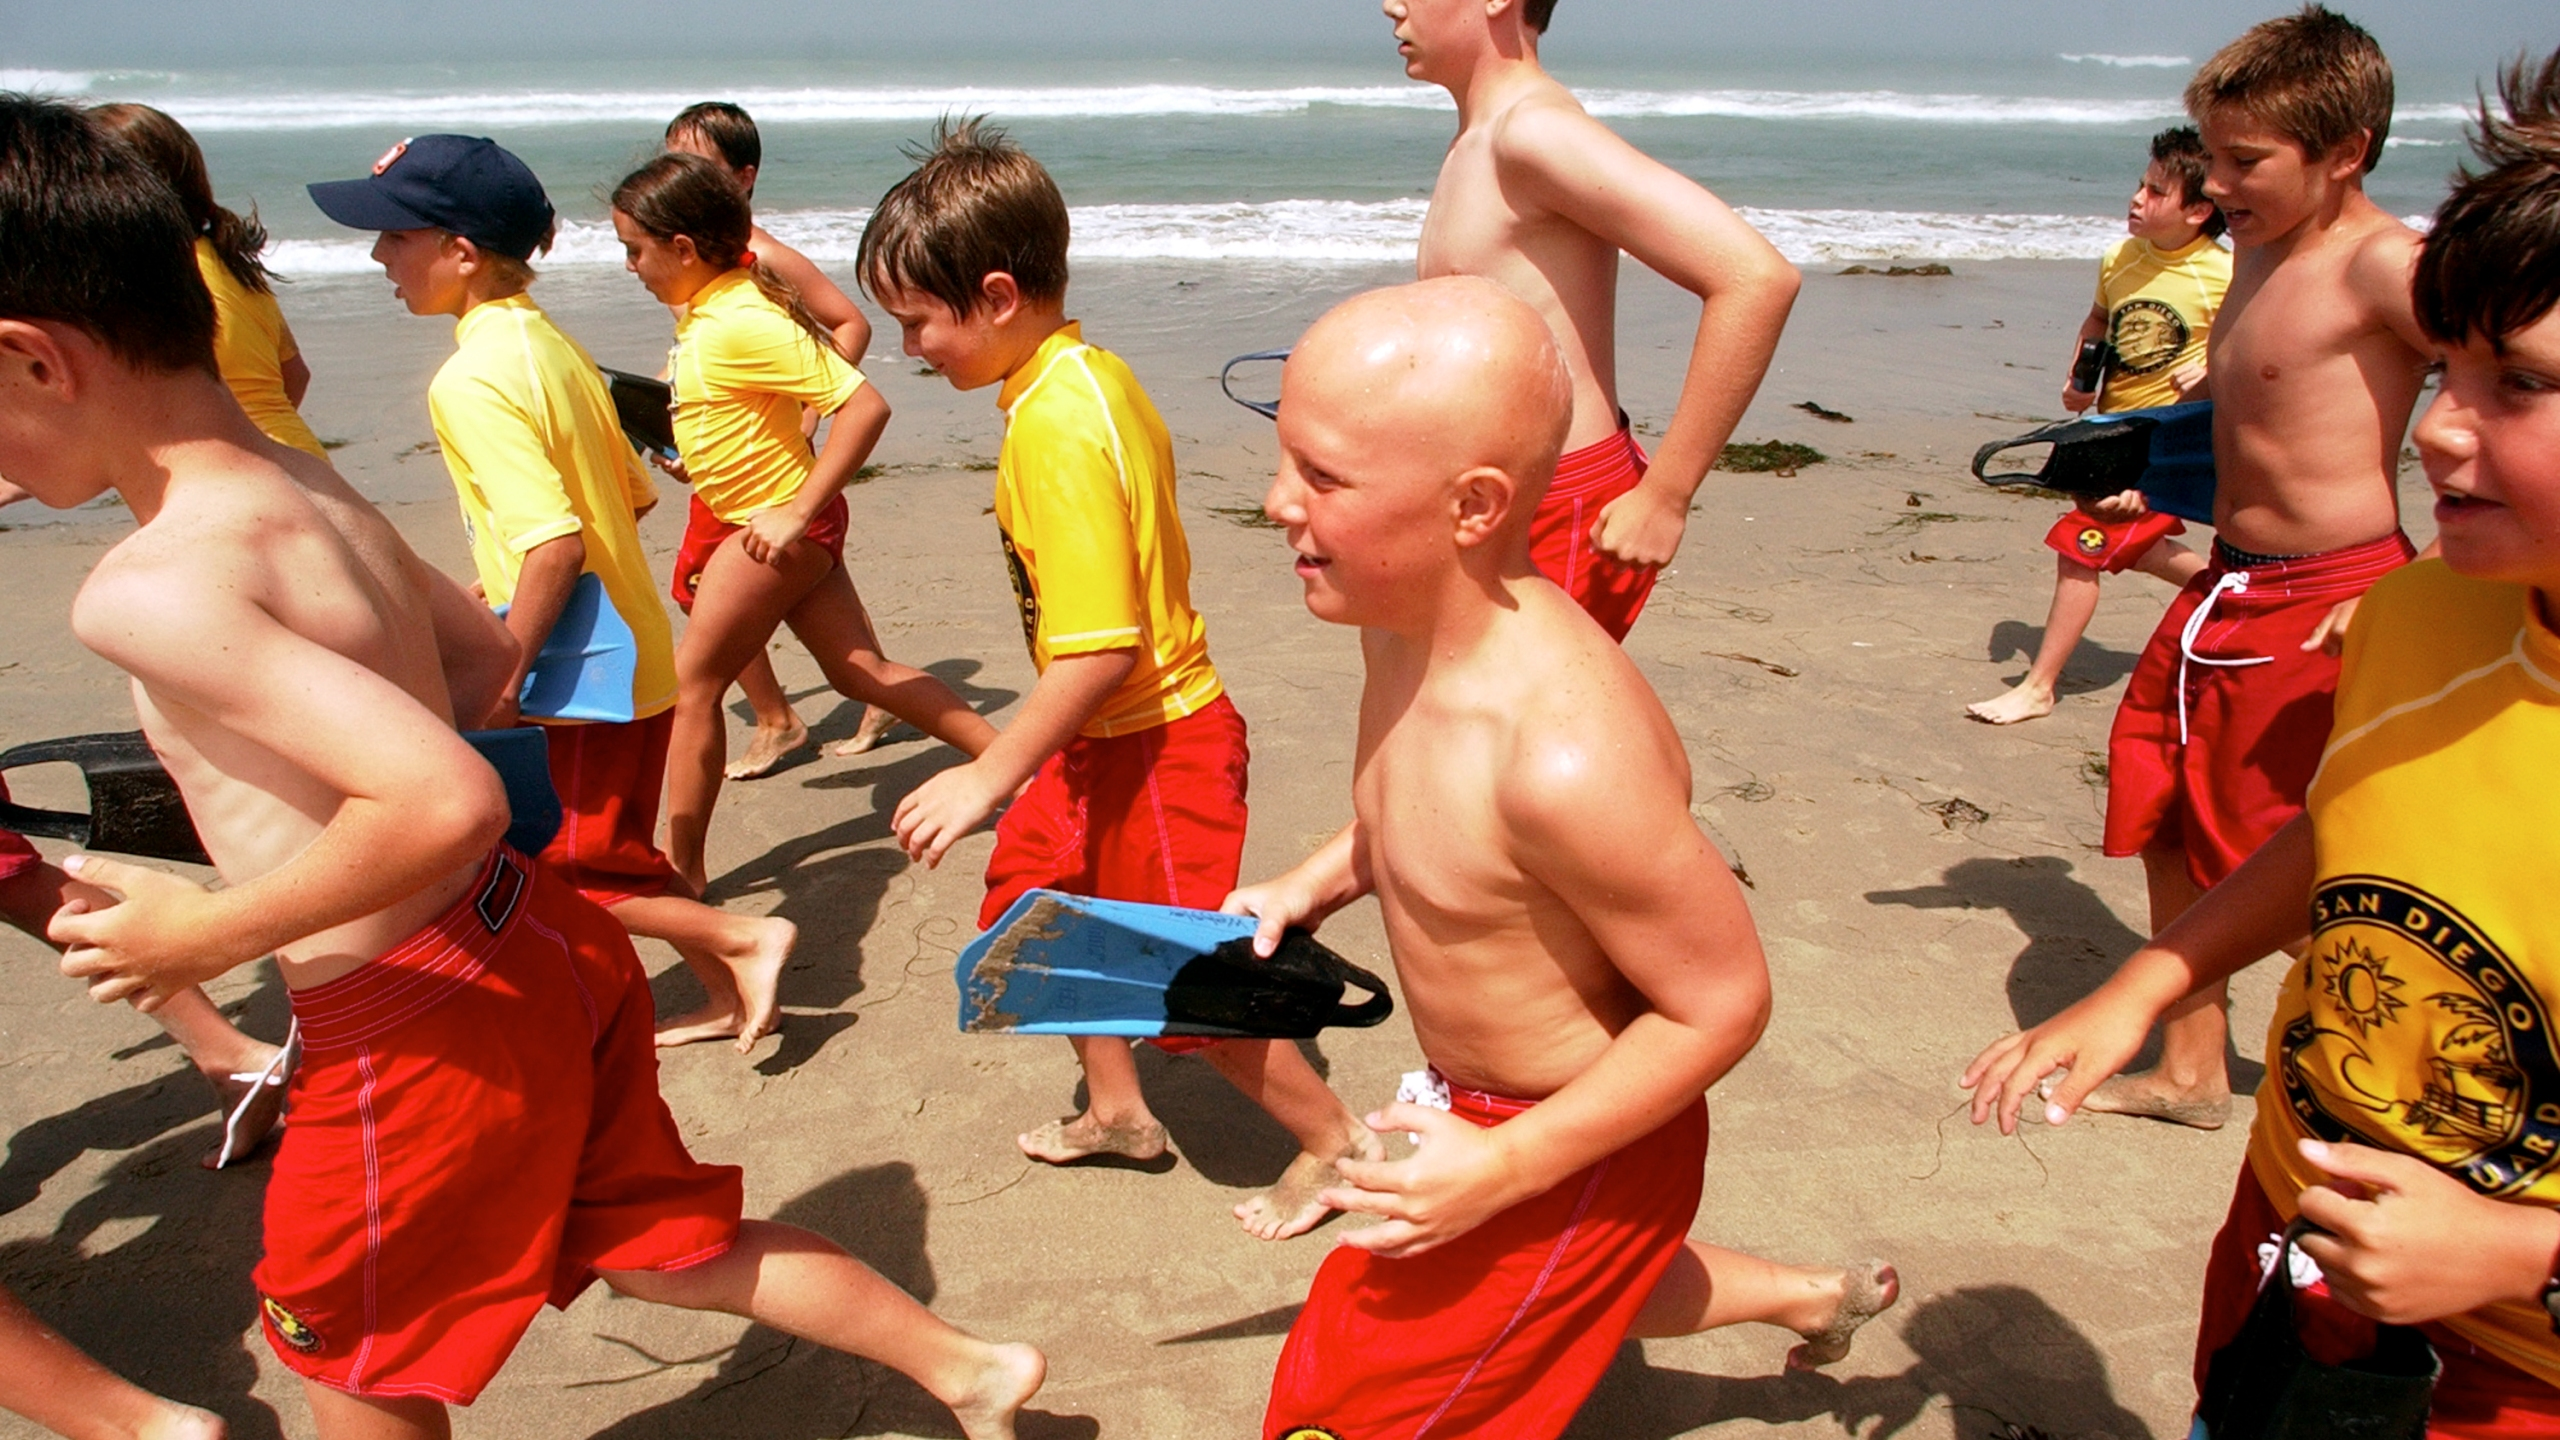 A group of junior lifeguards enjoy a run on the beach on July 3, 2003, at Pacific Beach in San Diego, California. (Sandy Huffaker/Getty Images)